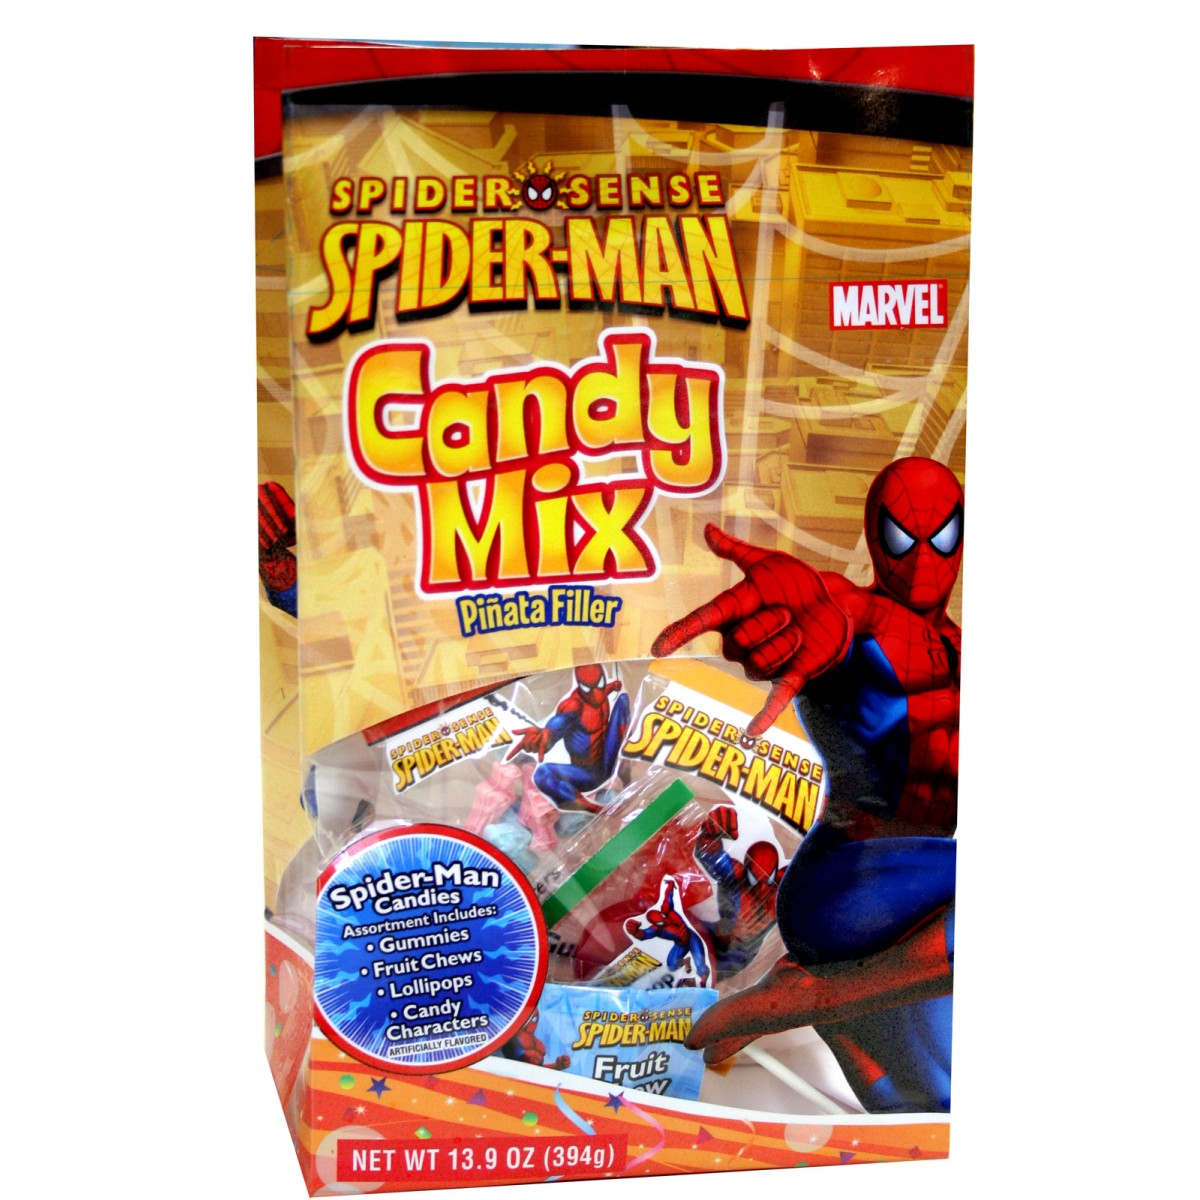 Spider-Man Pinata Filler Bagged Candy